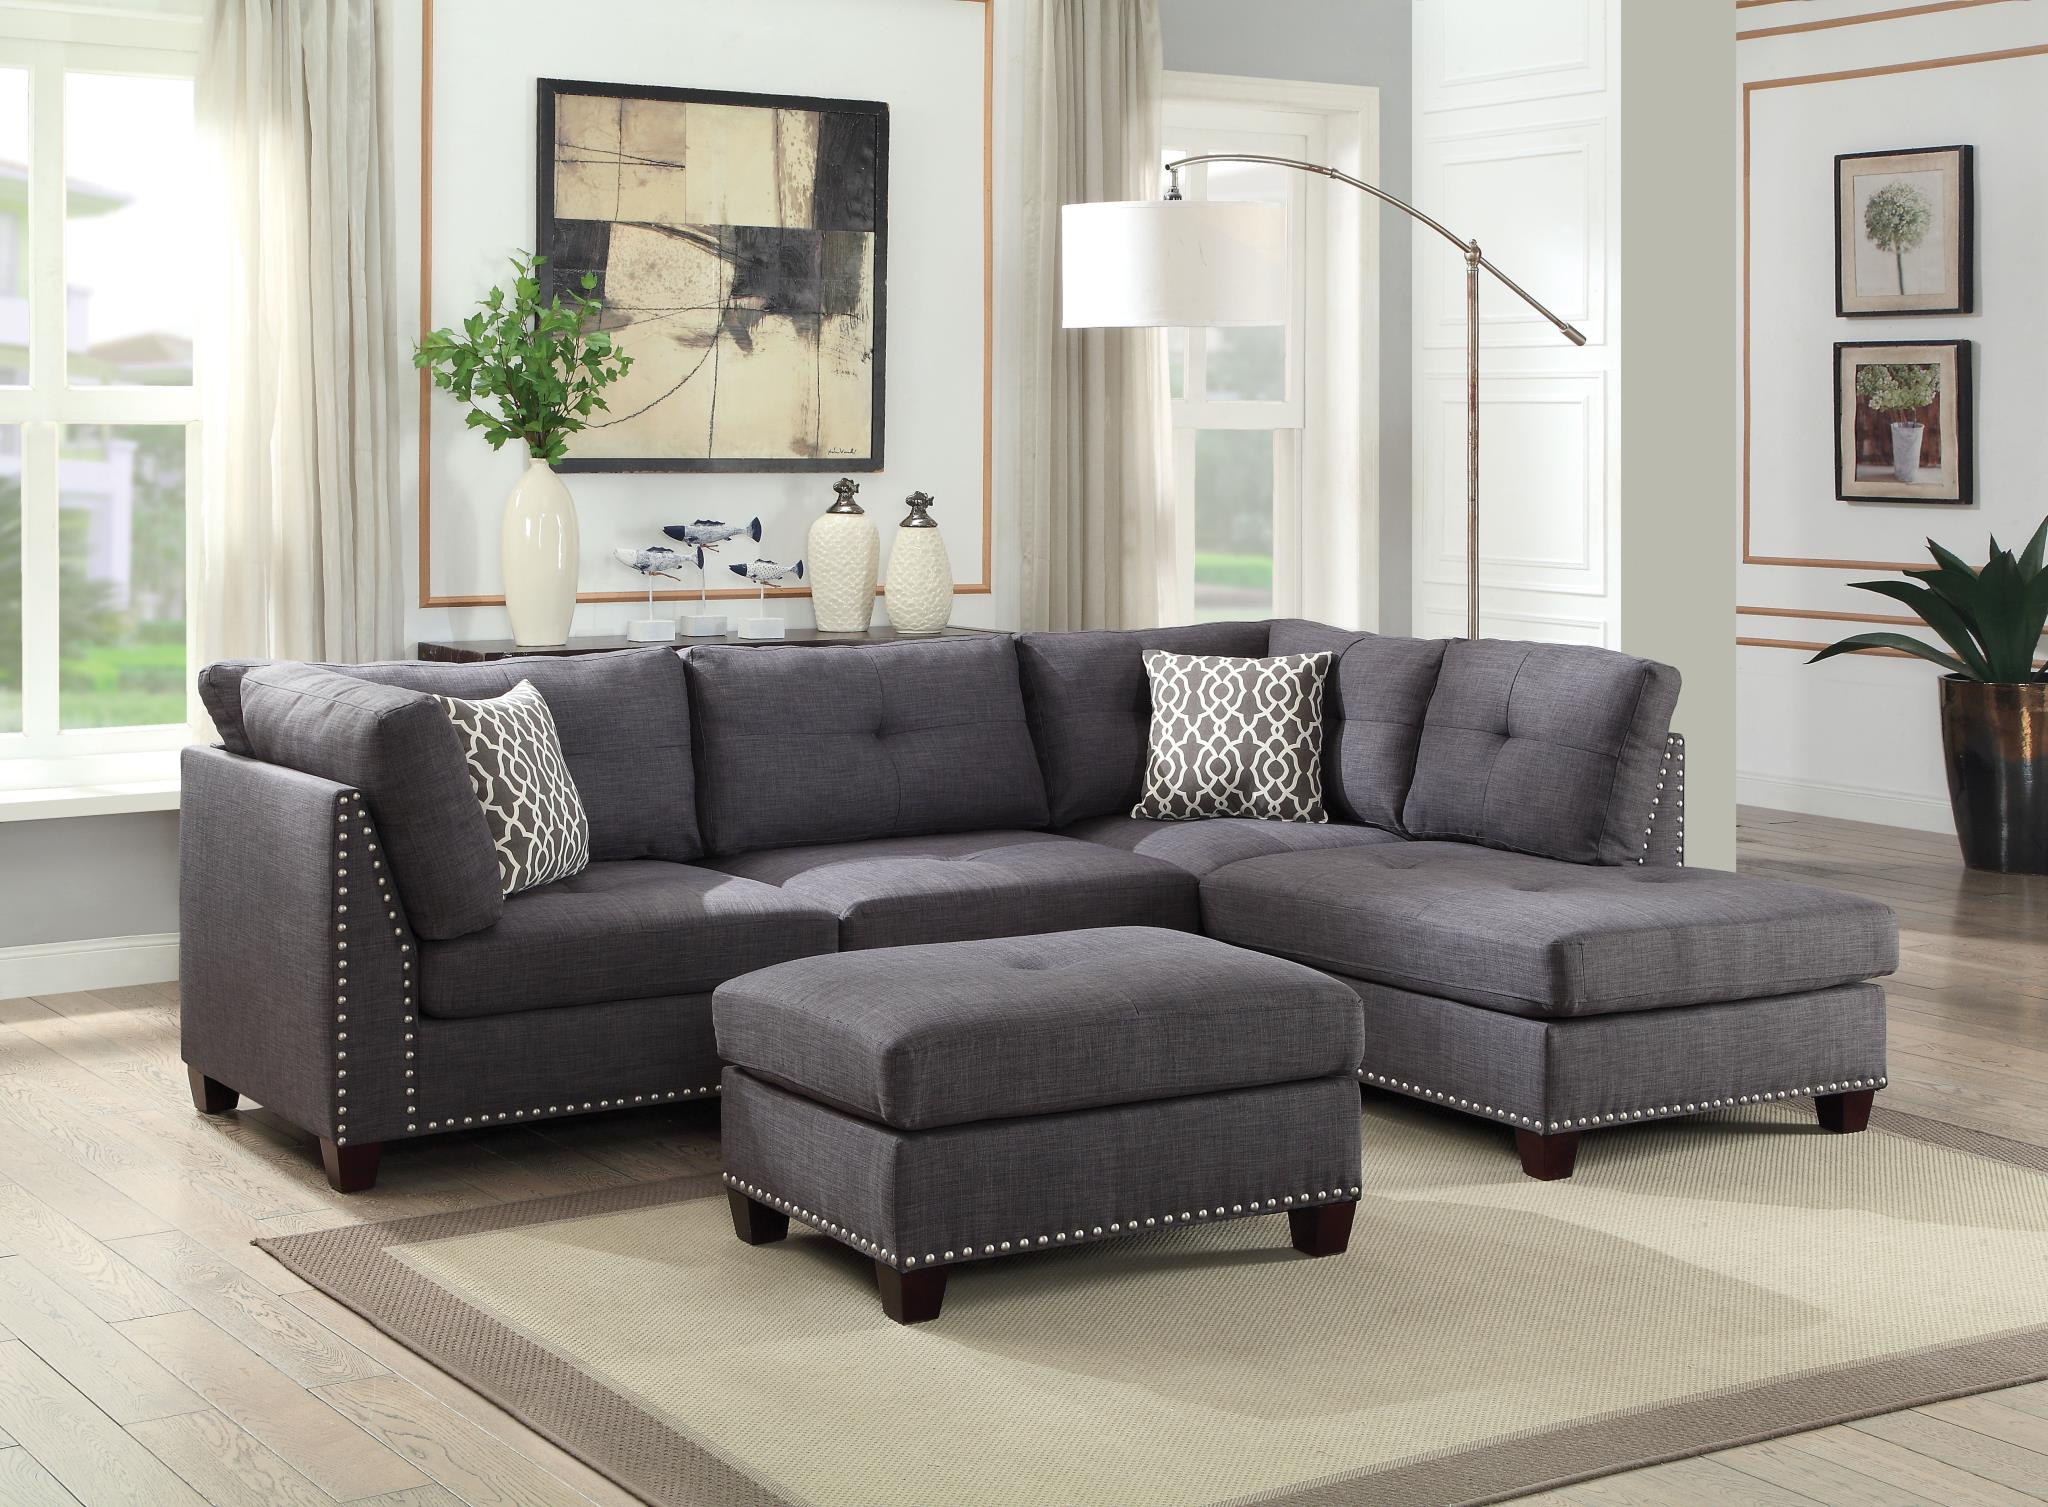 Complete Sectional Sofa w/ Right Facing Chaise and Ottoman